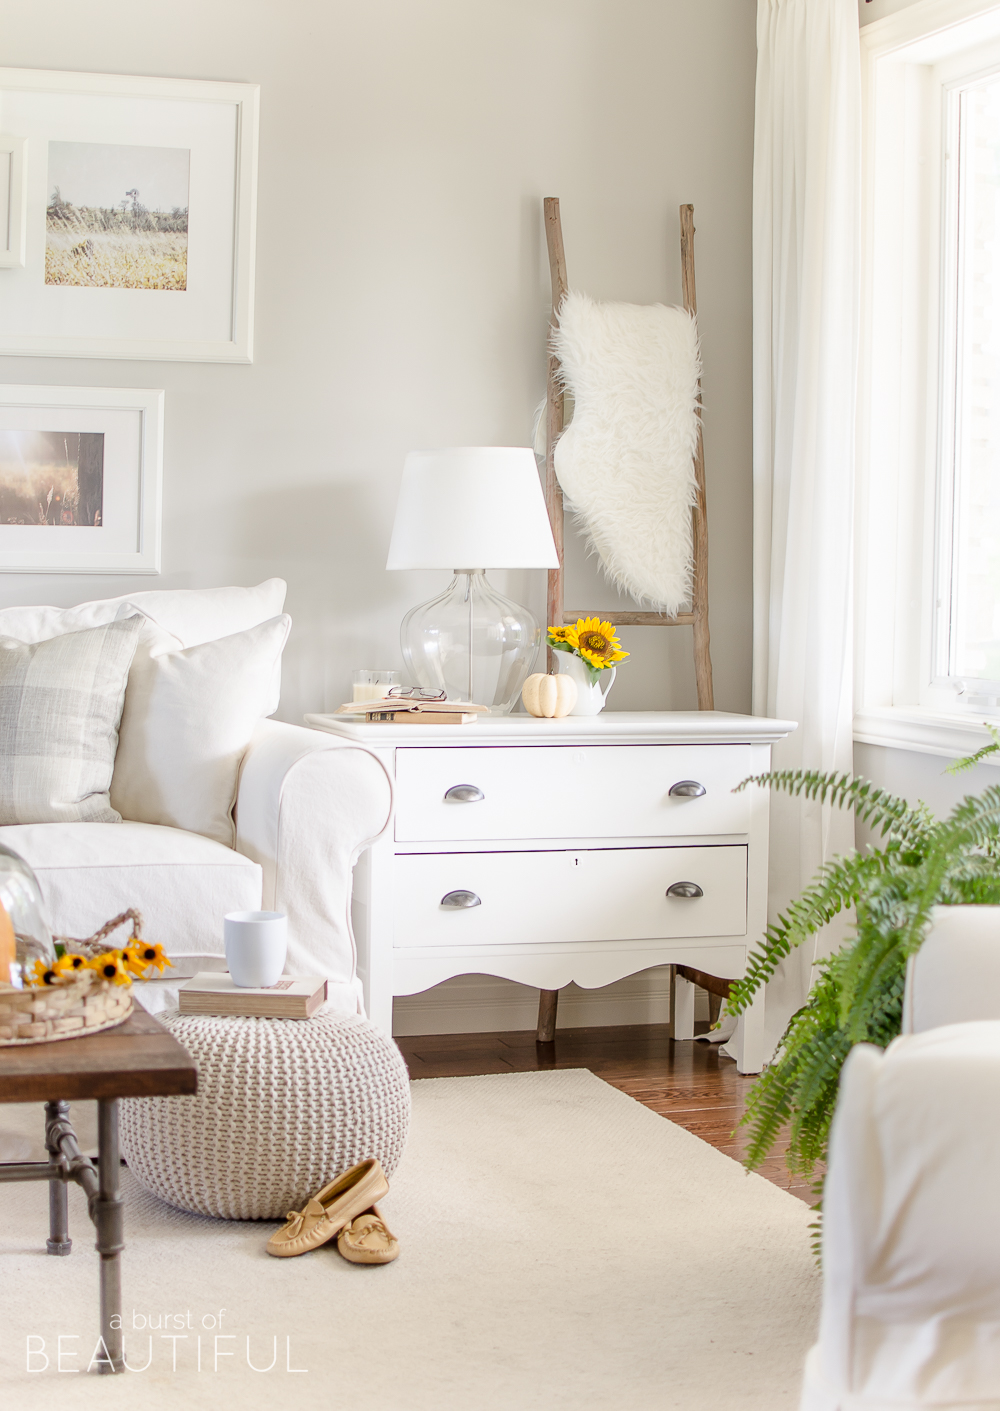 This beautiful modern farmhouse embraces fall with subtle hints of the season